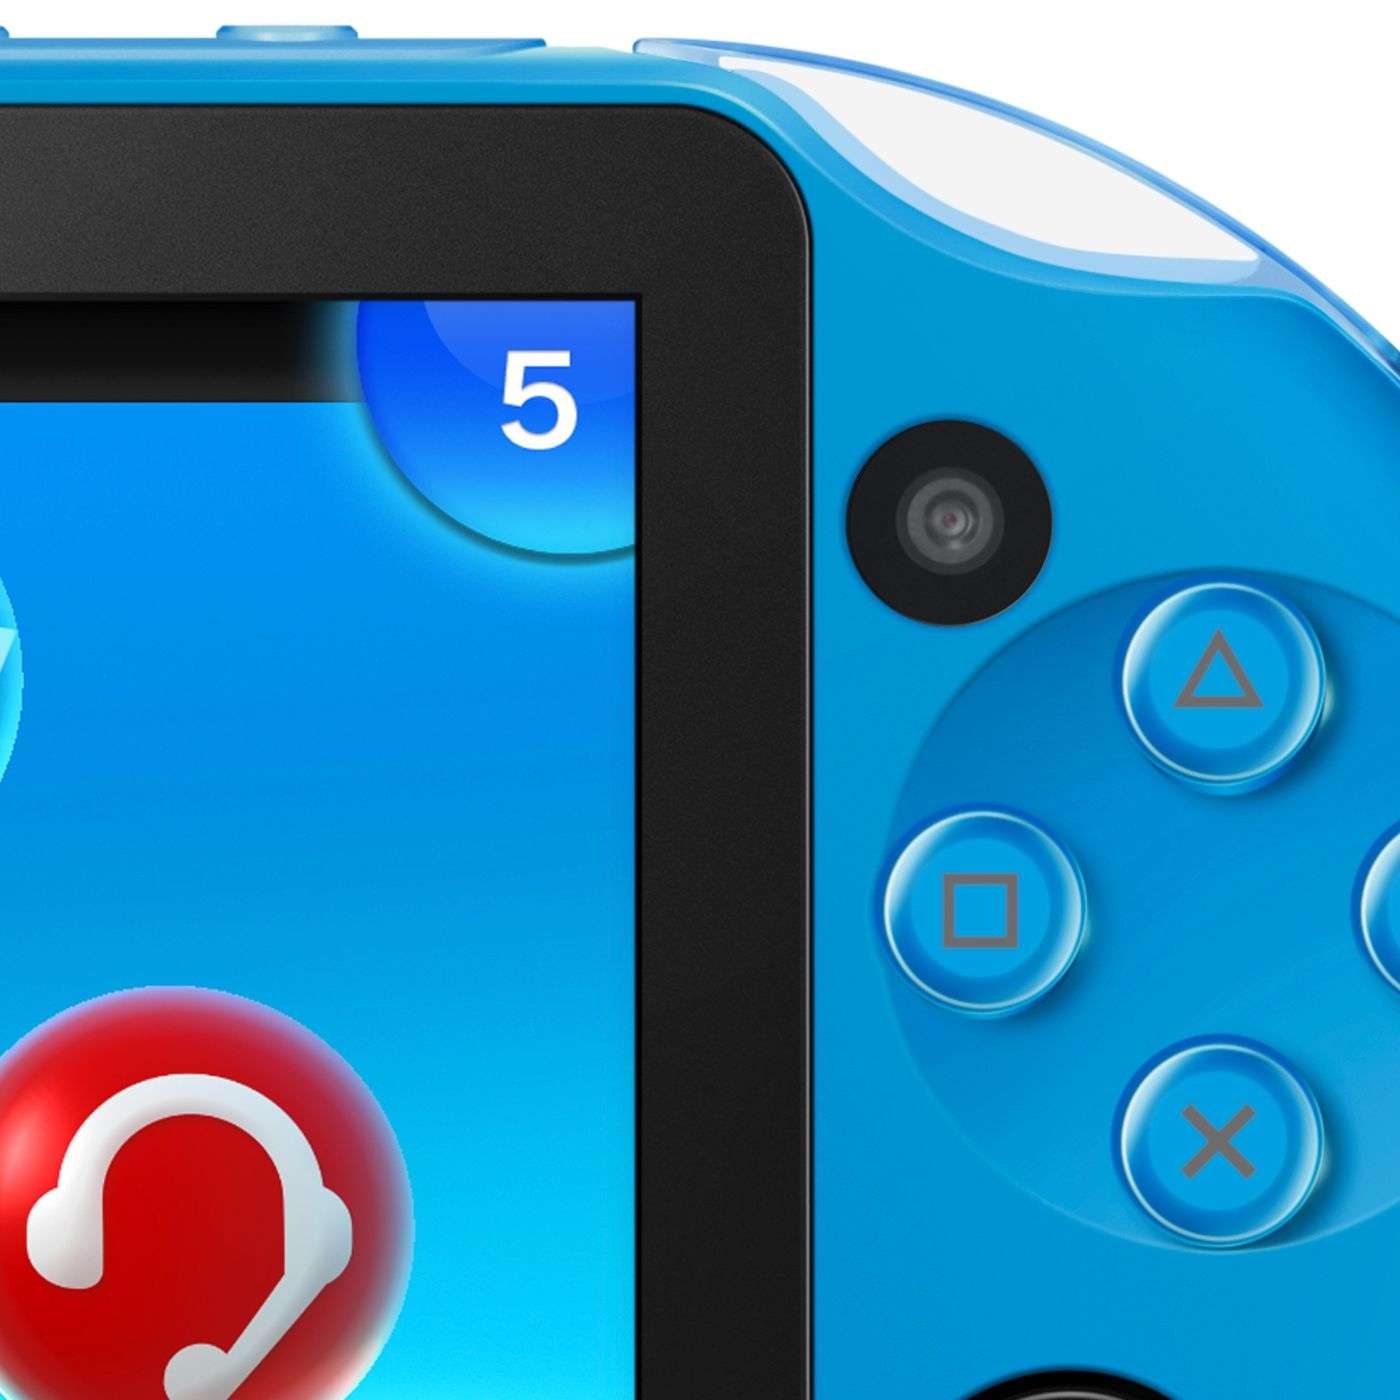 PlayStation Vita may die childless, but it changed Sony in